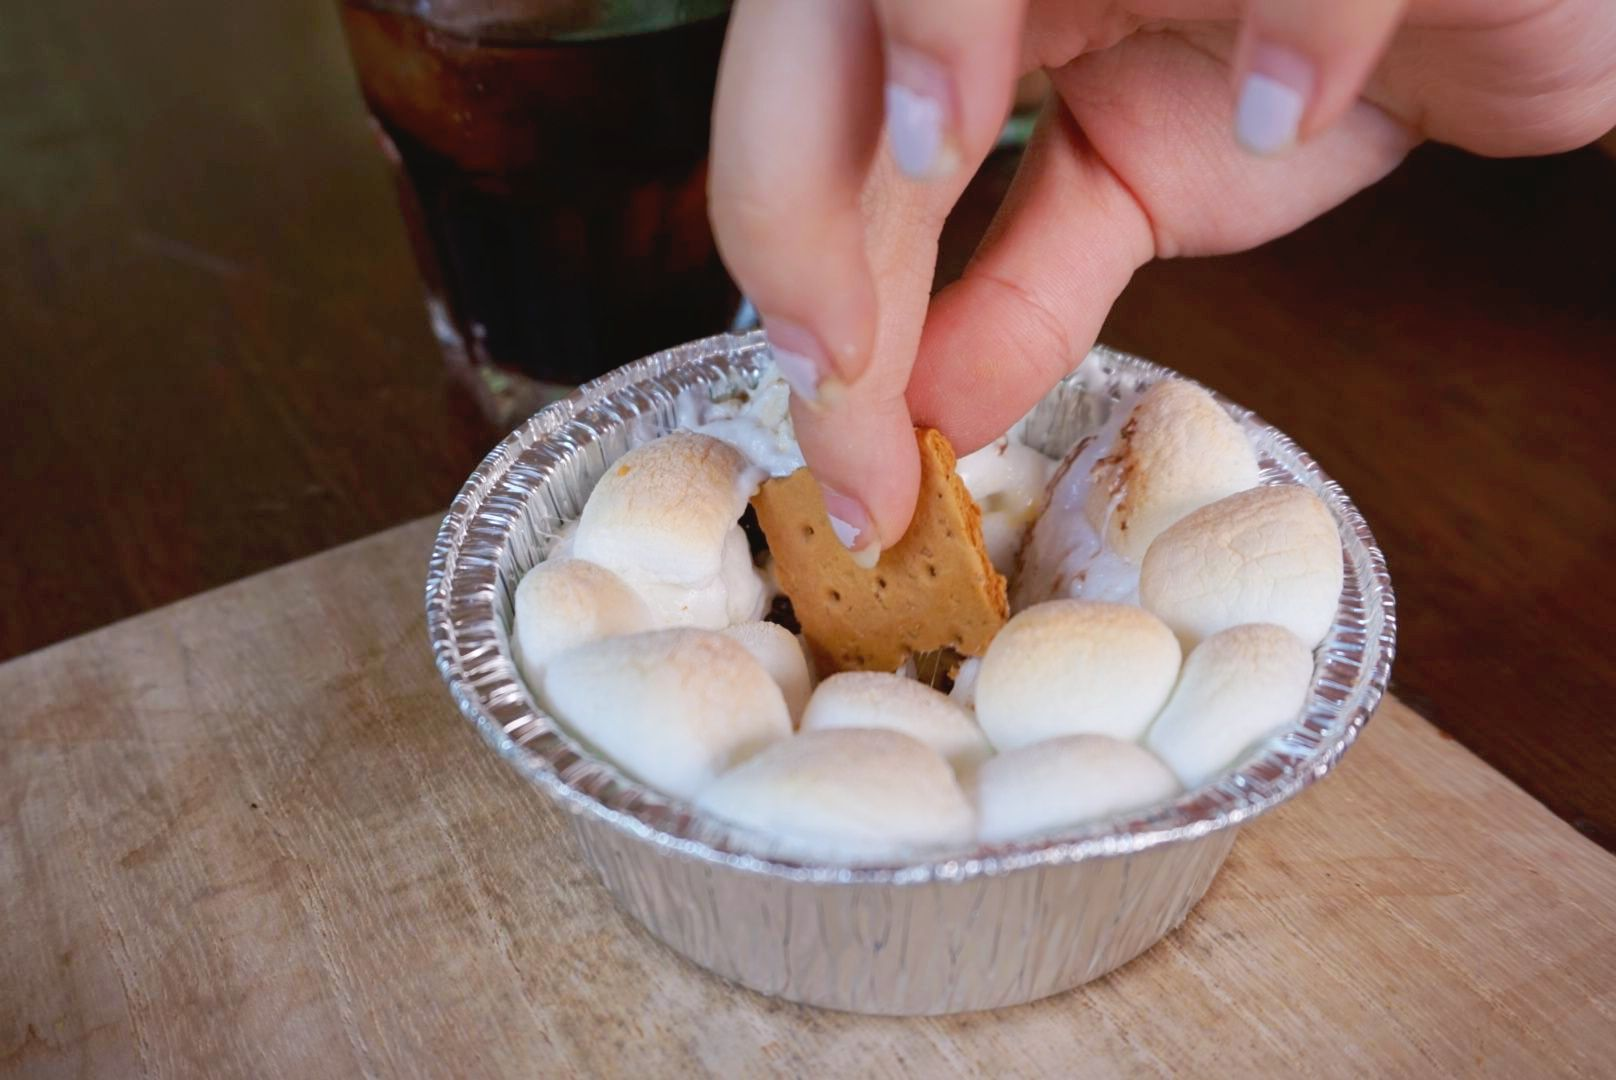 Since I can't have coffee or chocolate, I settled for eating just the marshmallows of our mini smores pie.